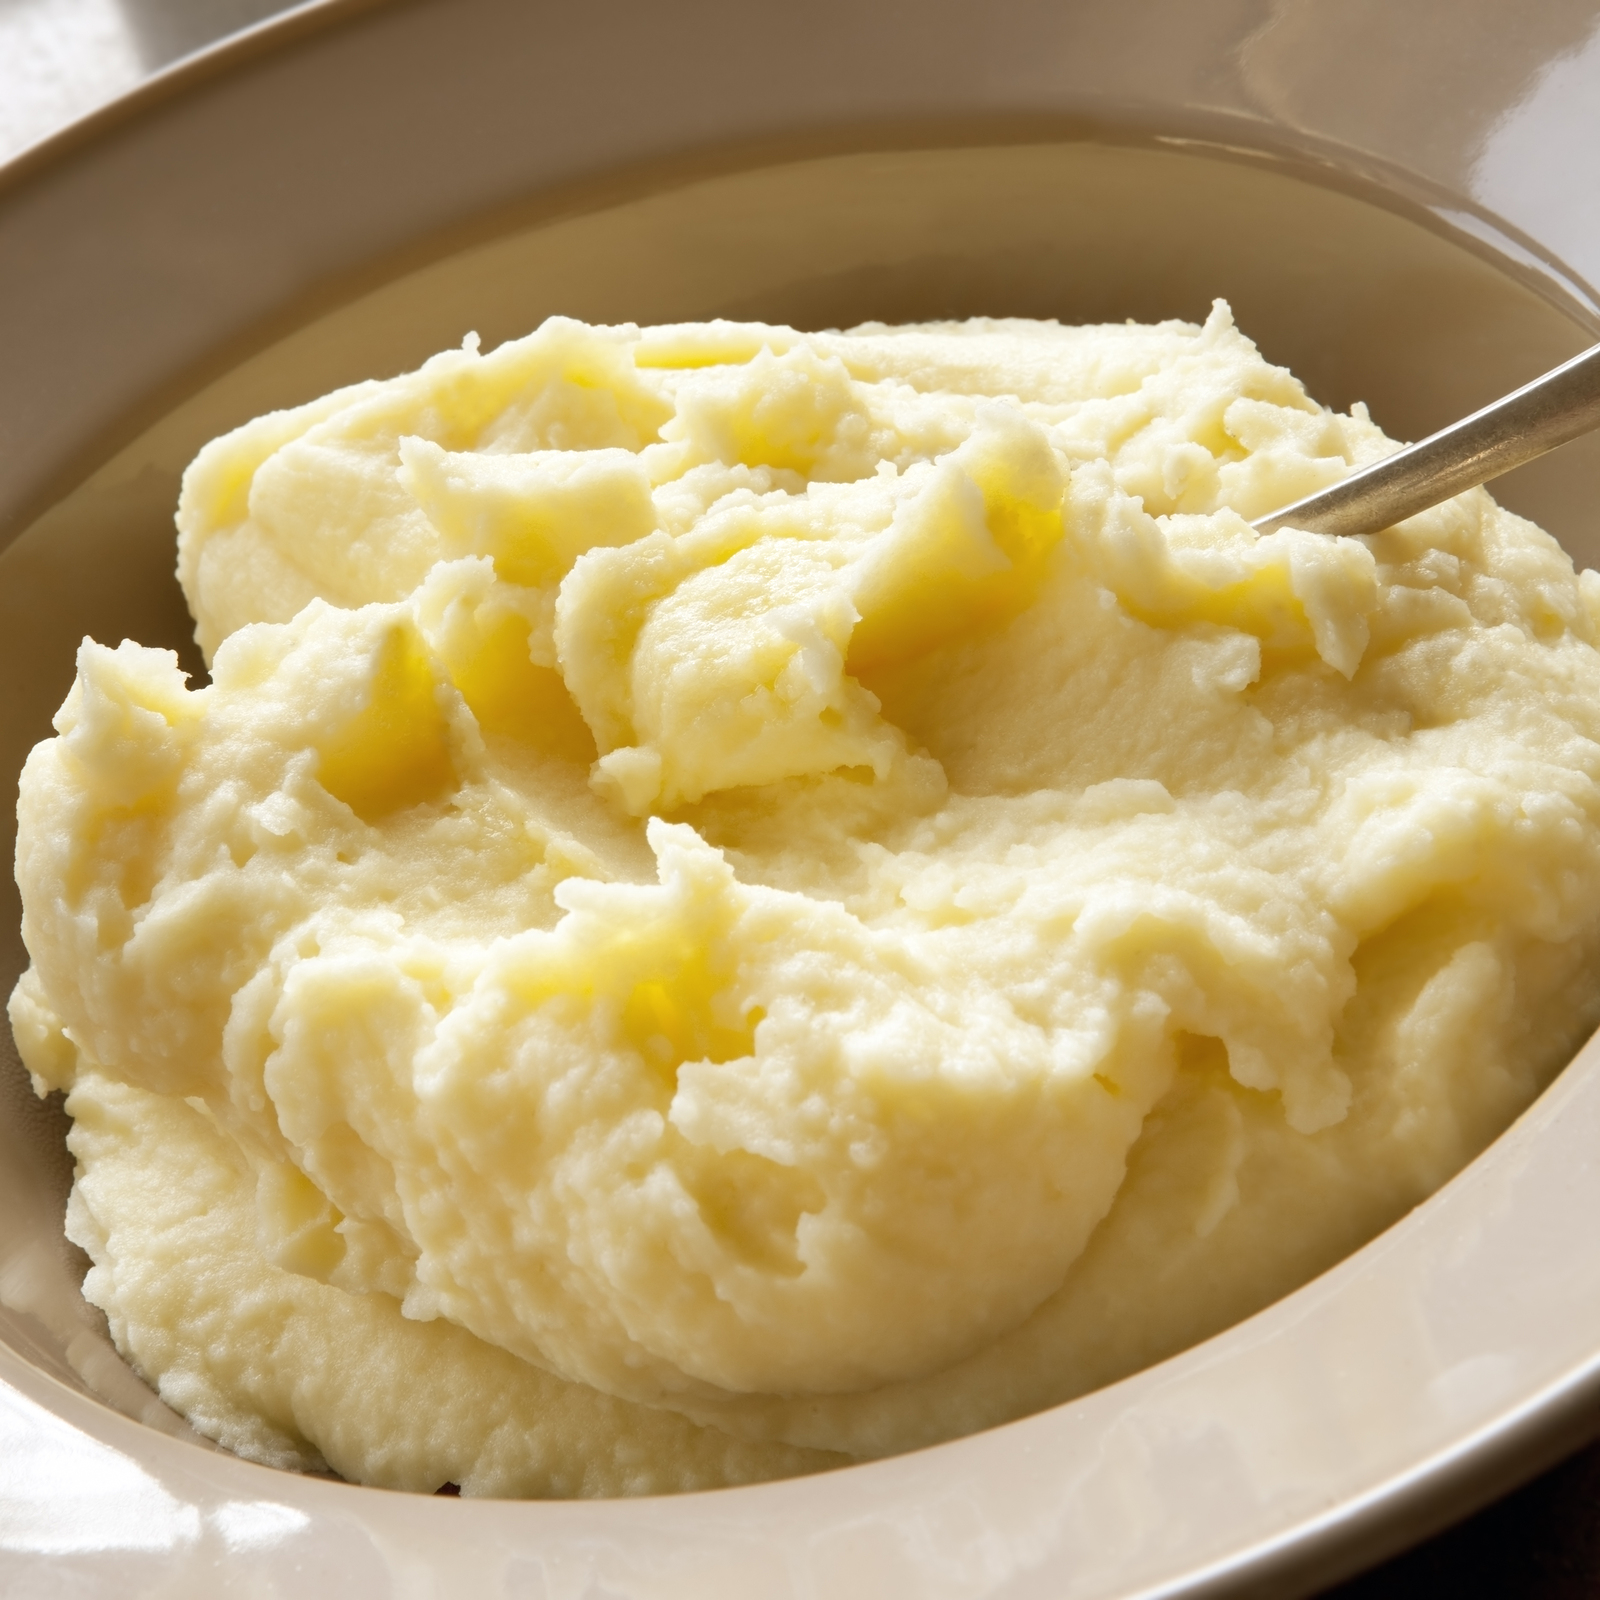 Mashed potato with spoon, in serving bowl.